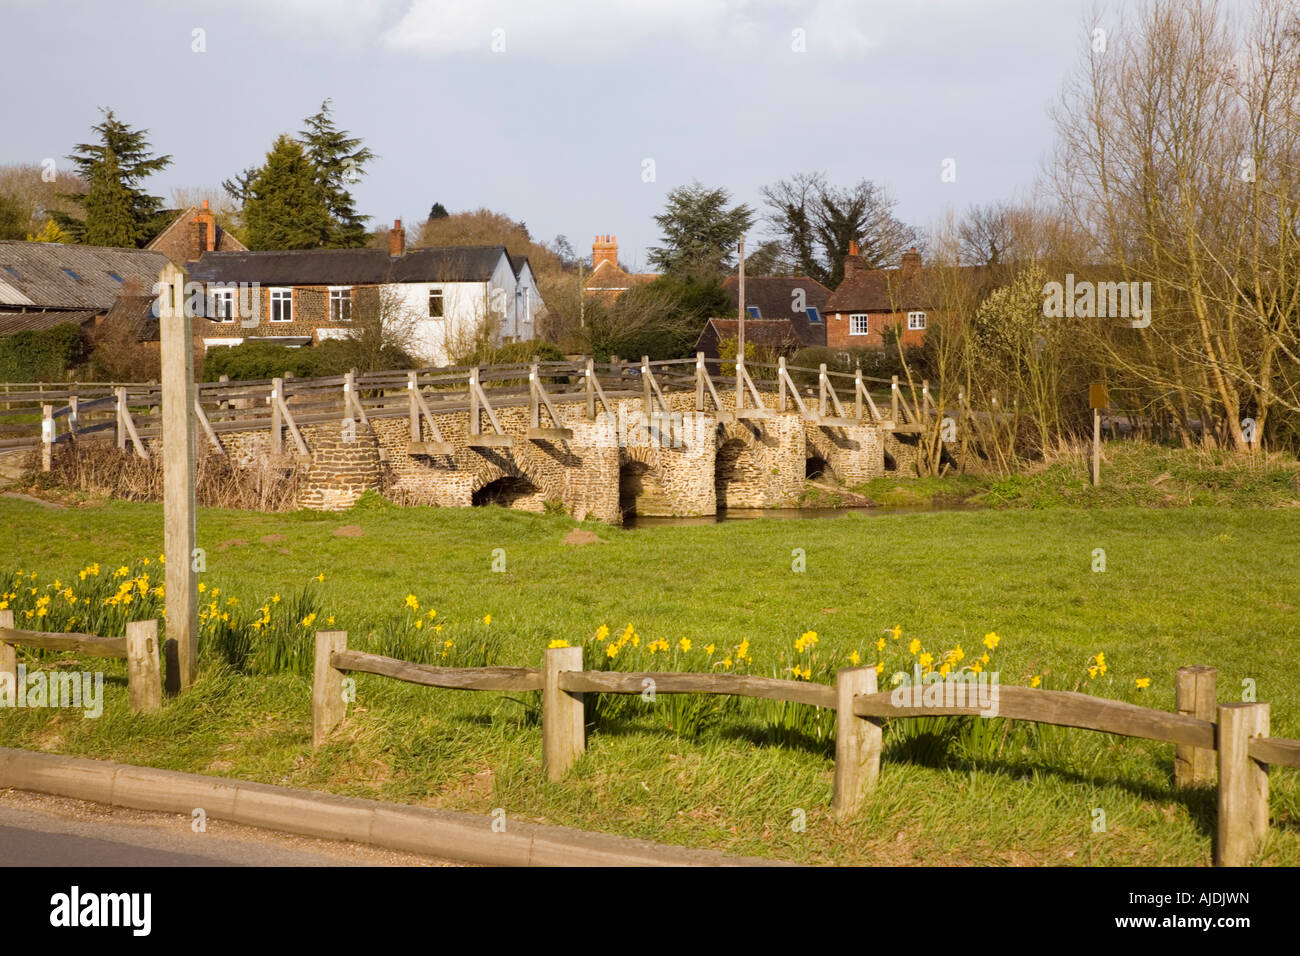 Tilford Surrey England UK Daffodils on green by old East Bridge crossing River Wey in historic village in spring - Stock Image